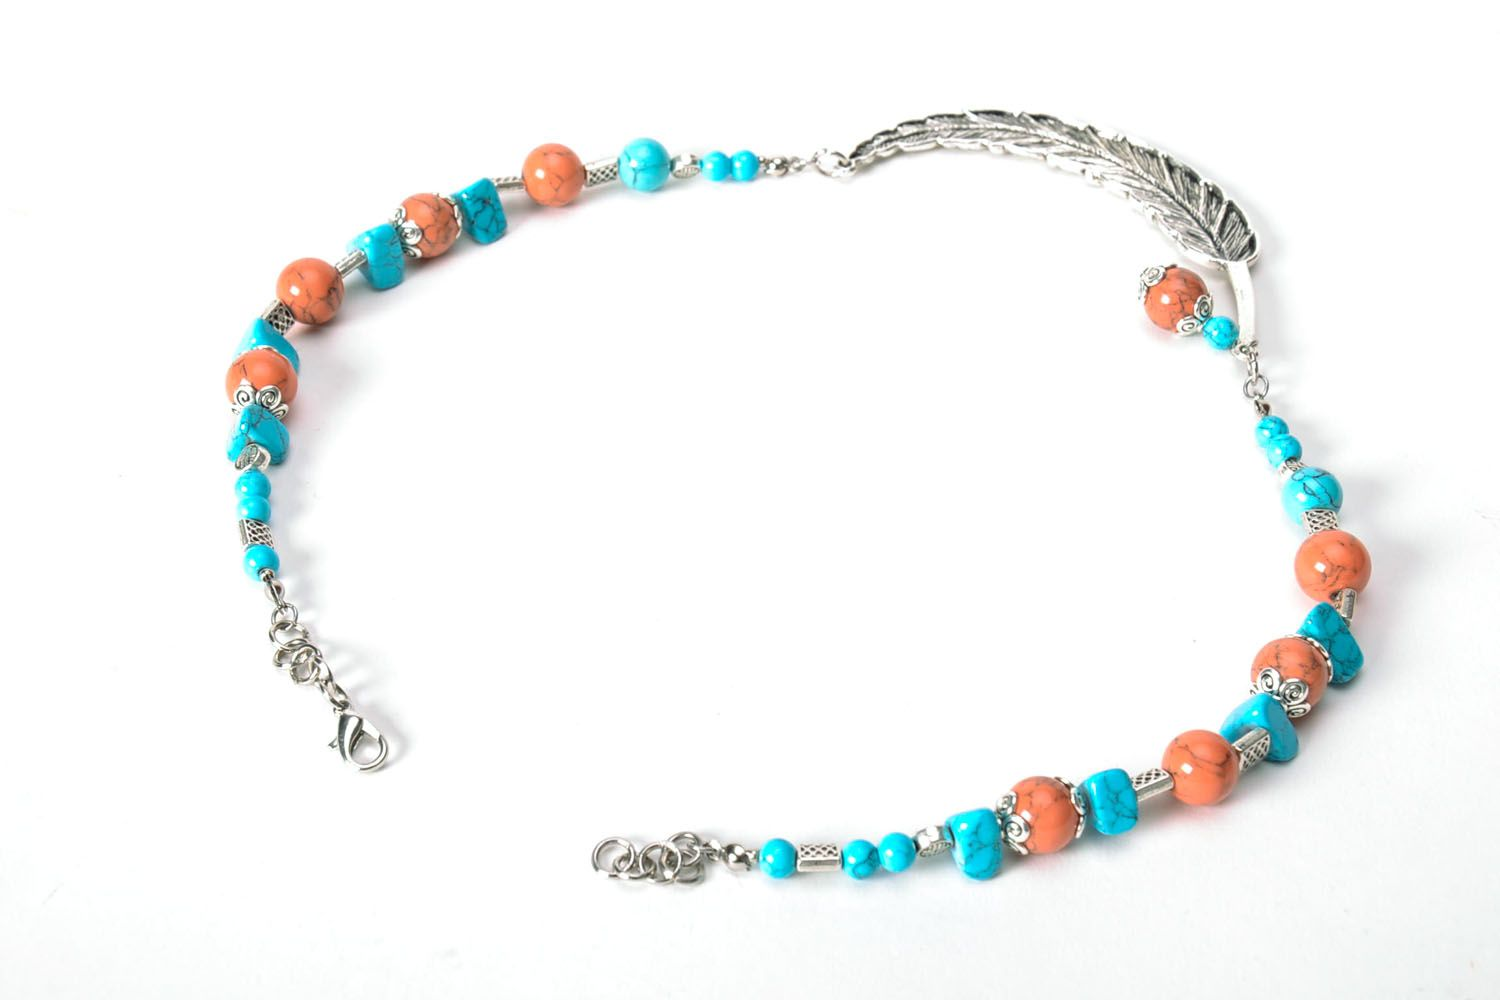 Necklace made of turquoise  photo 3